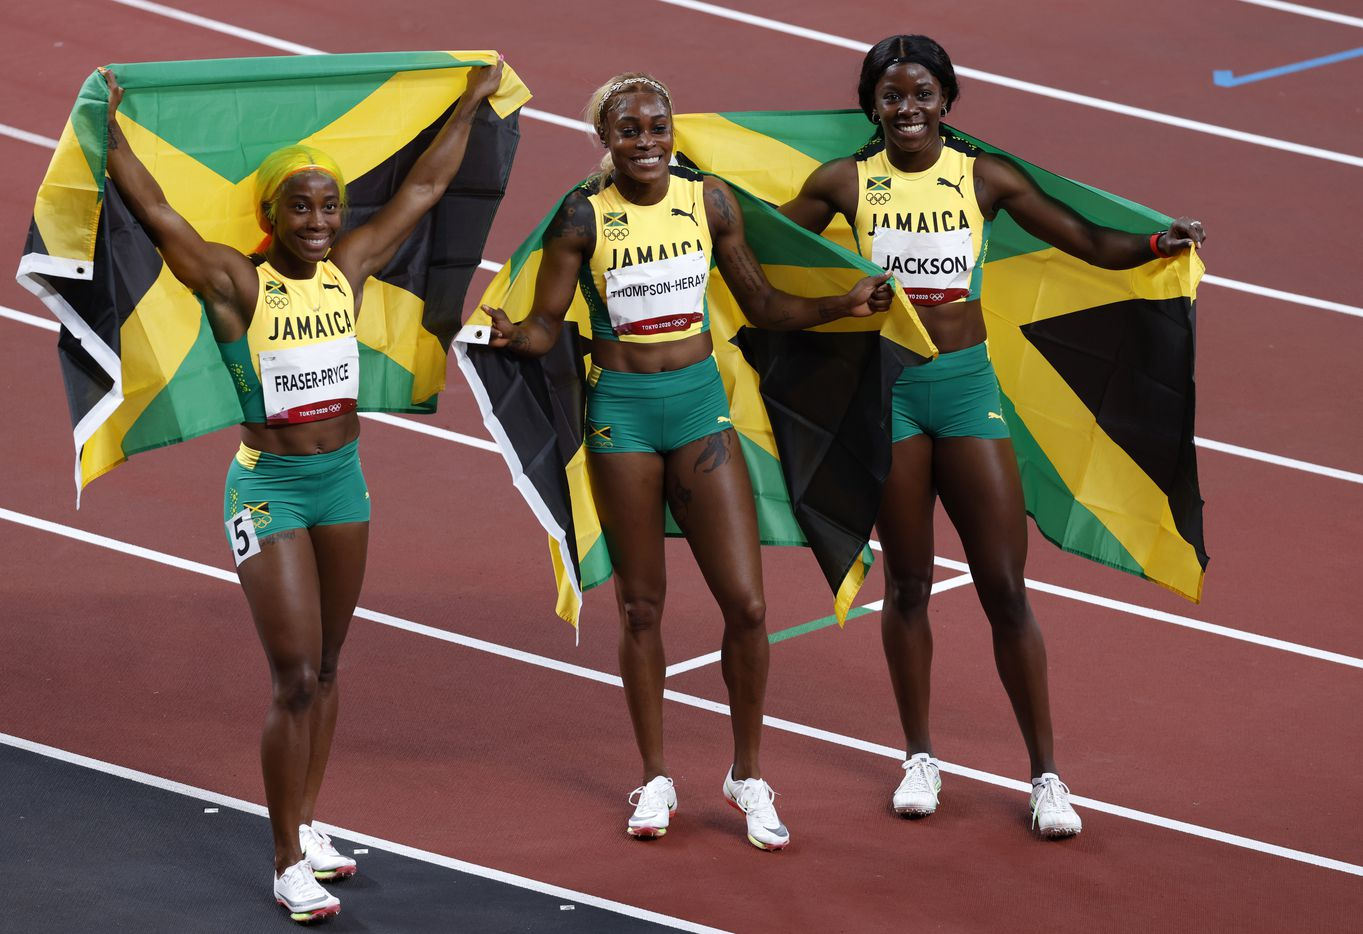 Jamaica's Shelly-Ann Fraser-Pryce, Elaine Thompson-Herah and Shericka Jackson hold up the Jamaican flag after taking first, second, and third in the women's 100 meter final race during the postponed 2020 Tokyo Olympics at Olympic Stadium, on Saturday, July 31, 2021, in Tokyo, Japan. Thompson Herah broke the Olympic record with a time of 10.61 to earn a gold medal. (Vernon Bryant/The Dallas Morning News)